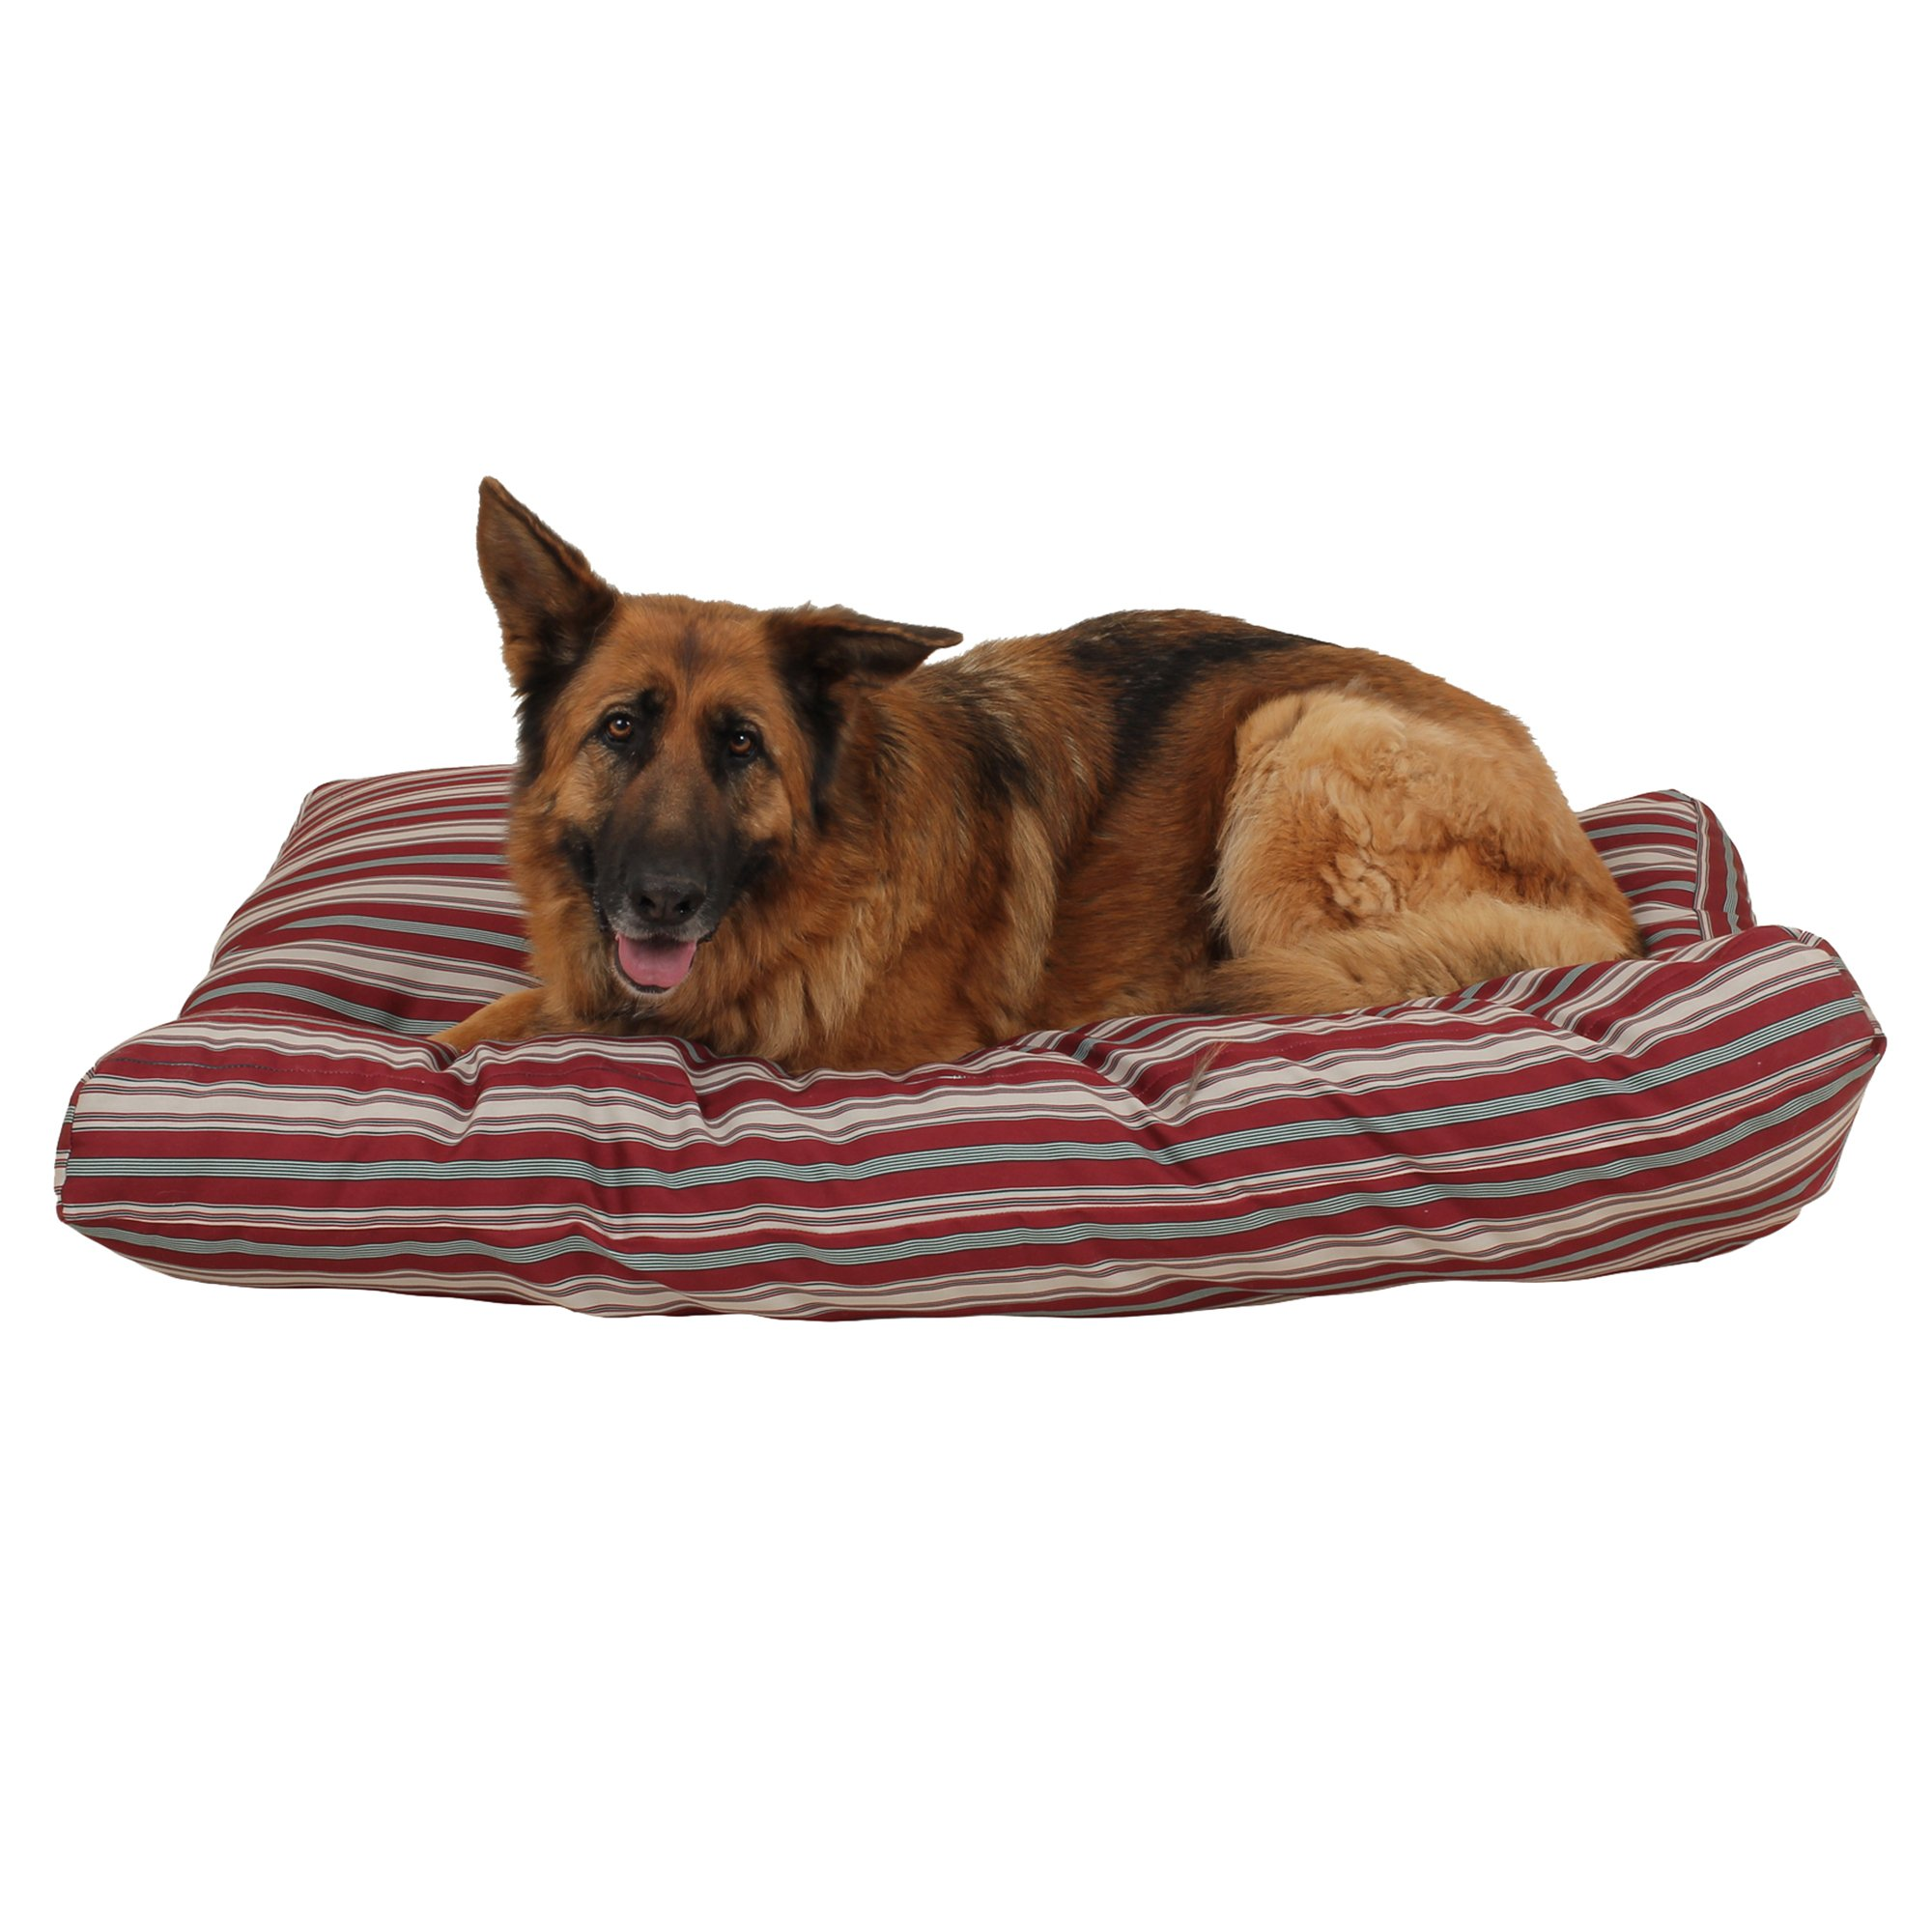 cooling x beds of petco bed dog for photo att mats dogs pads